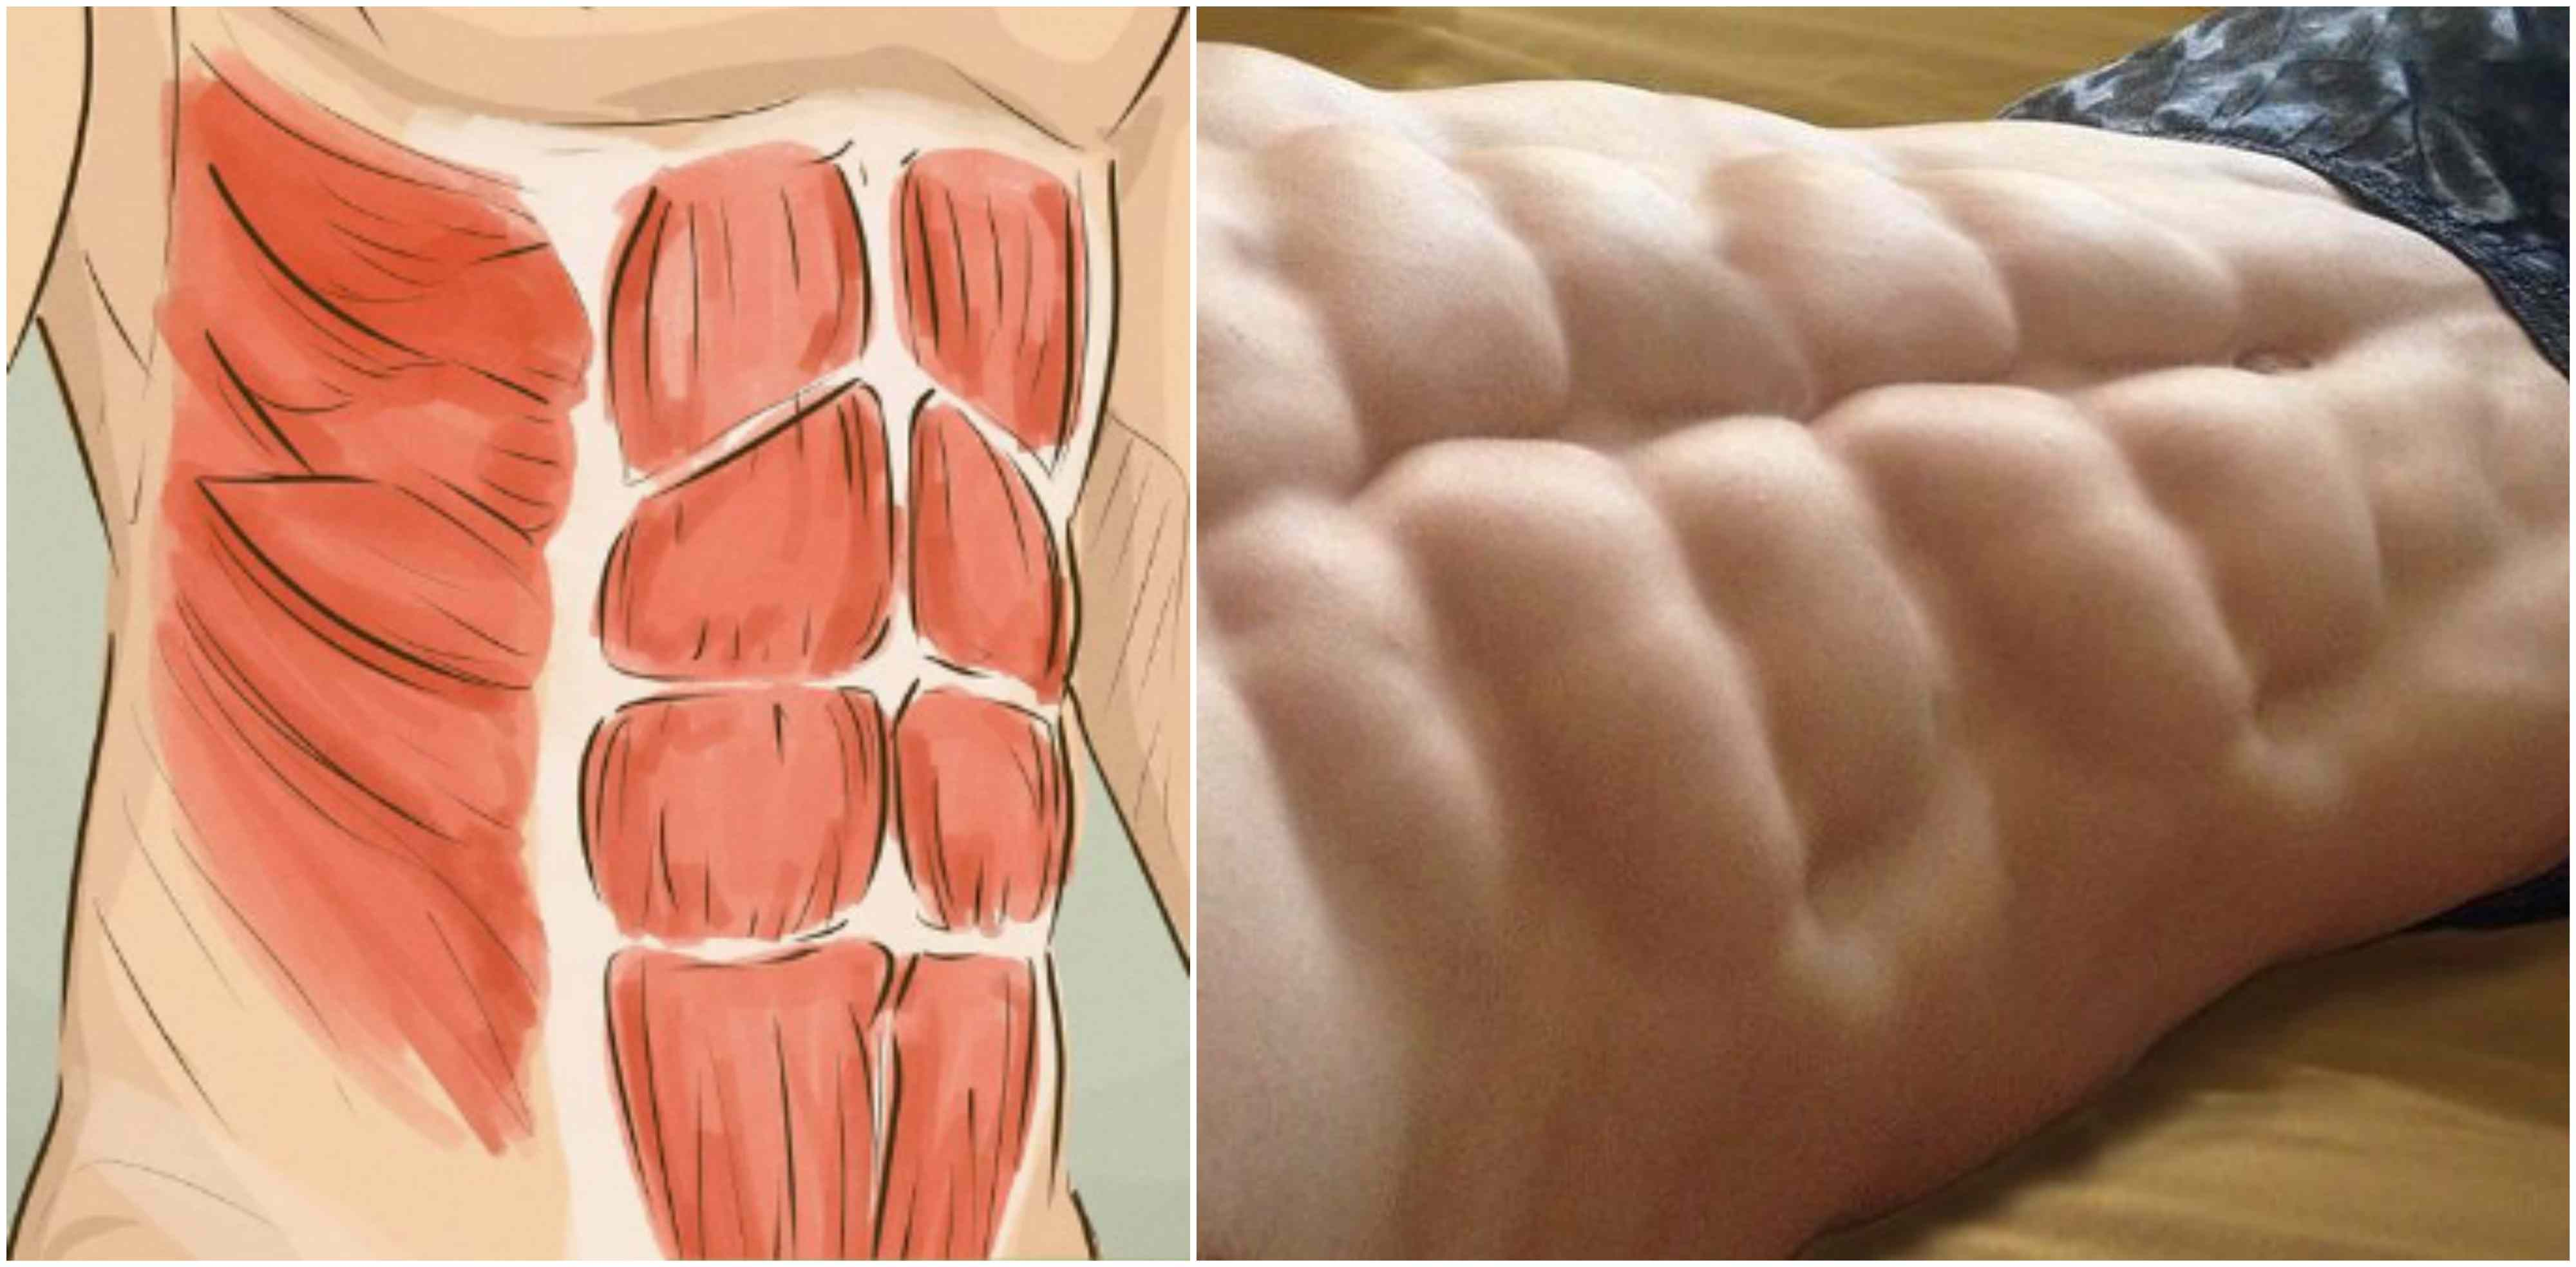 Sixpack Facts | All About Abs - Part 5